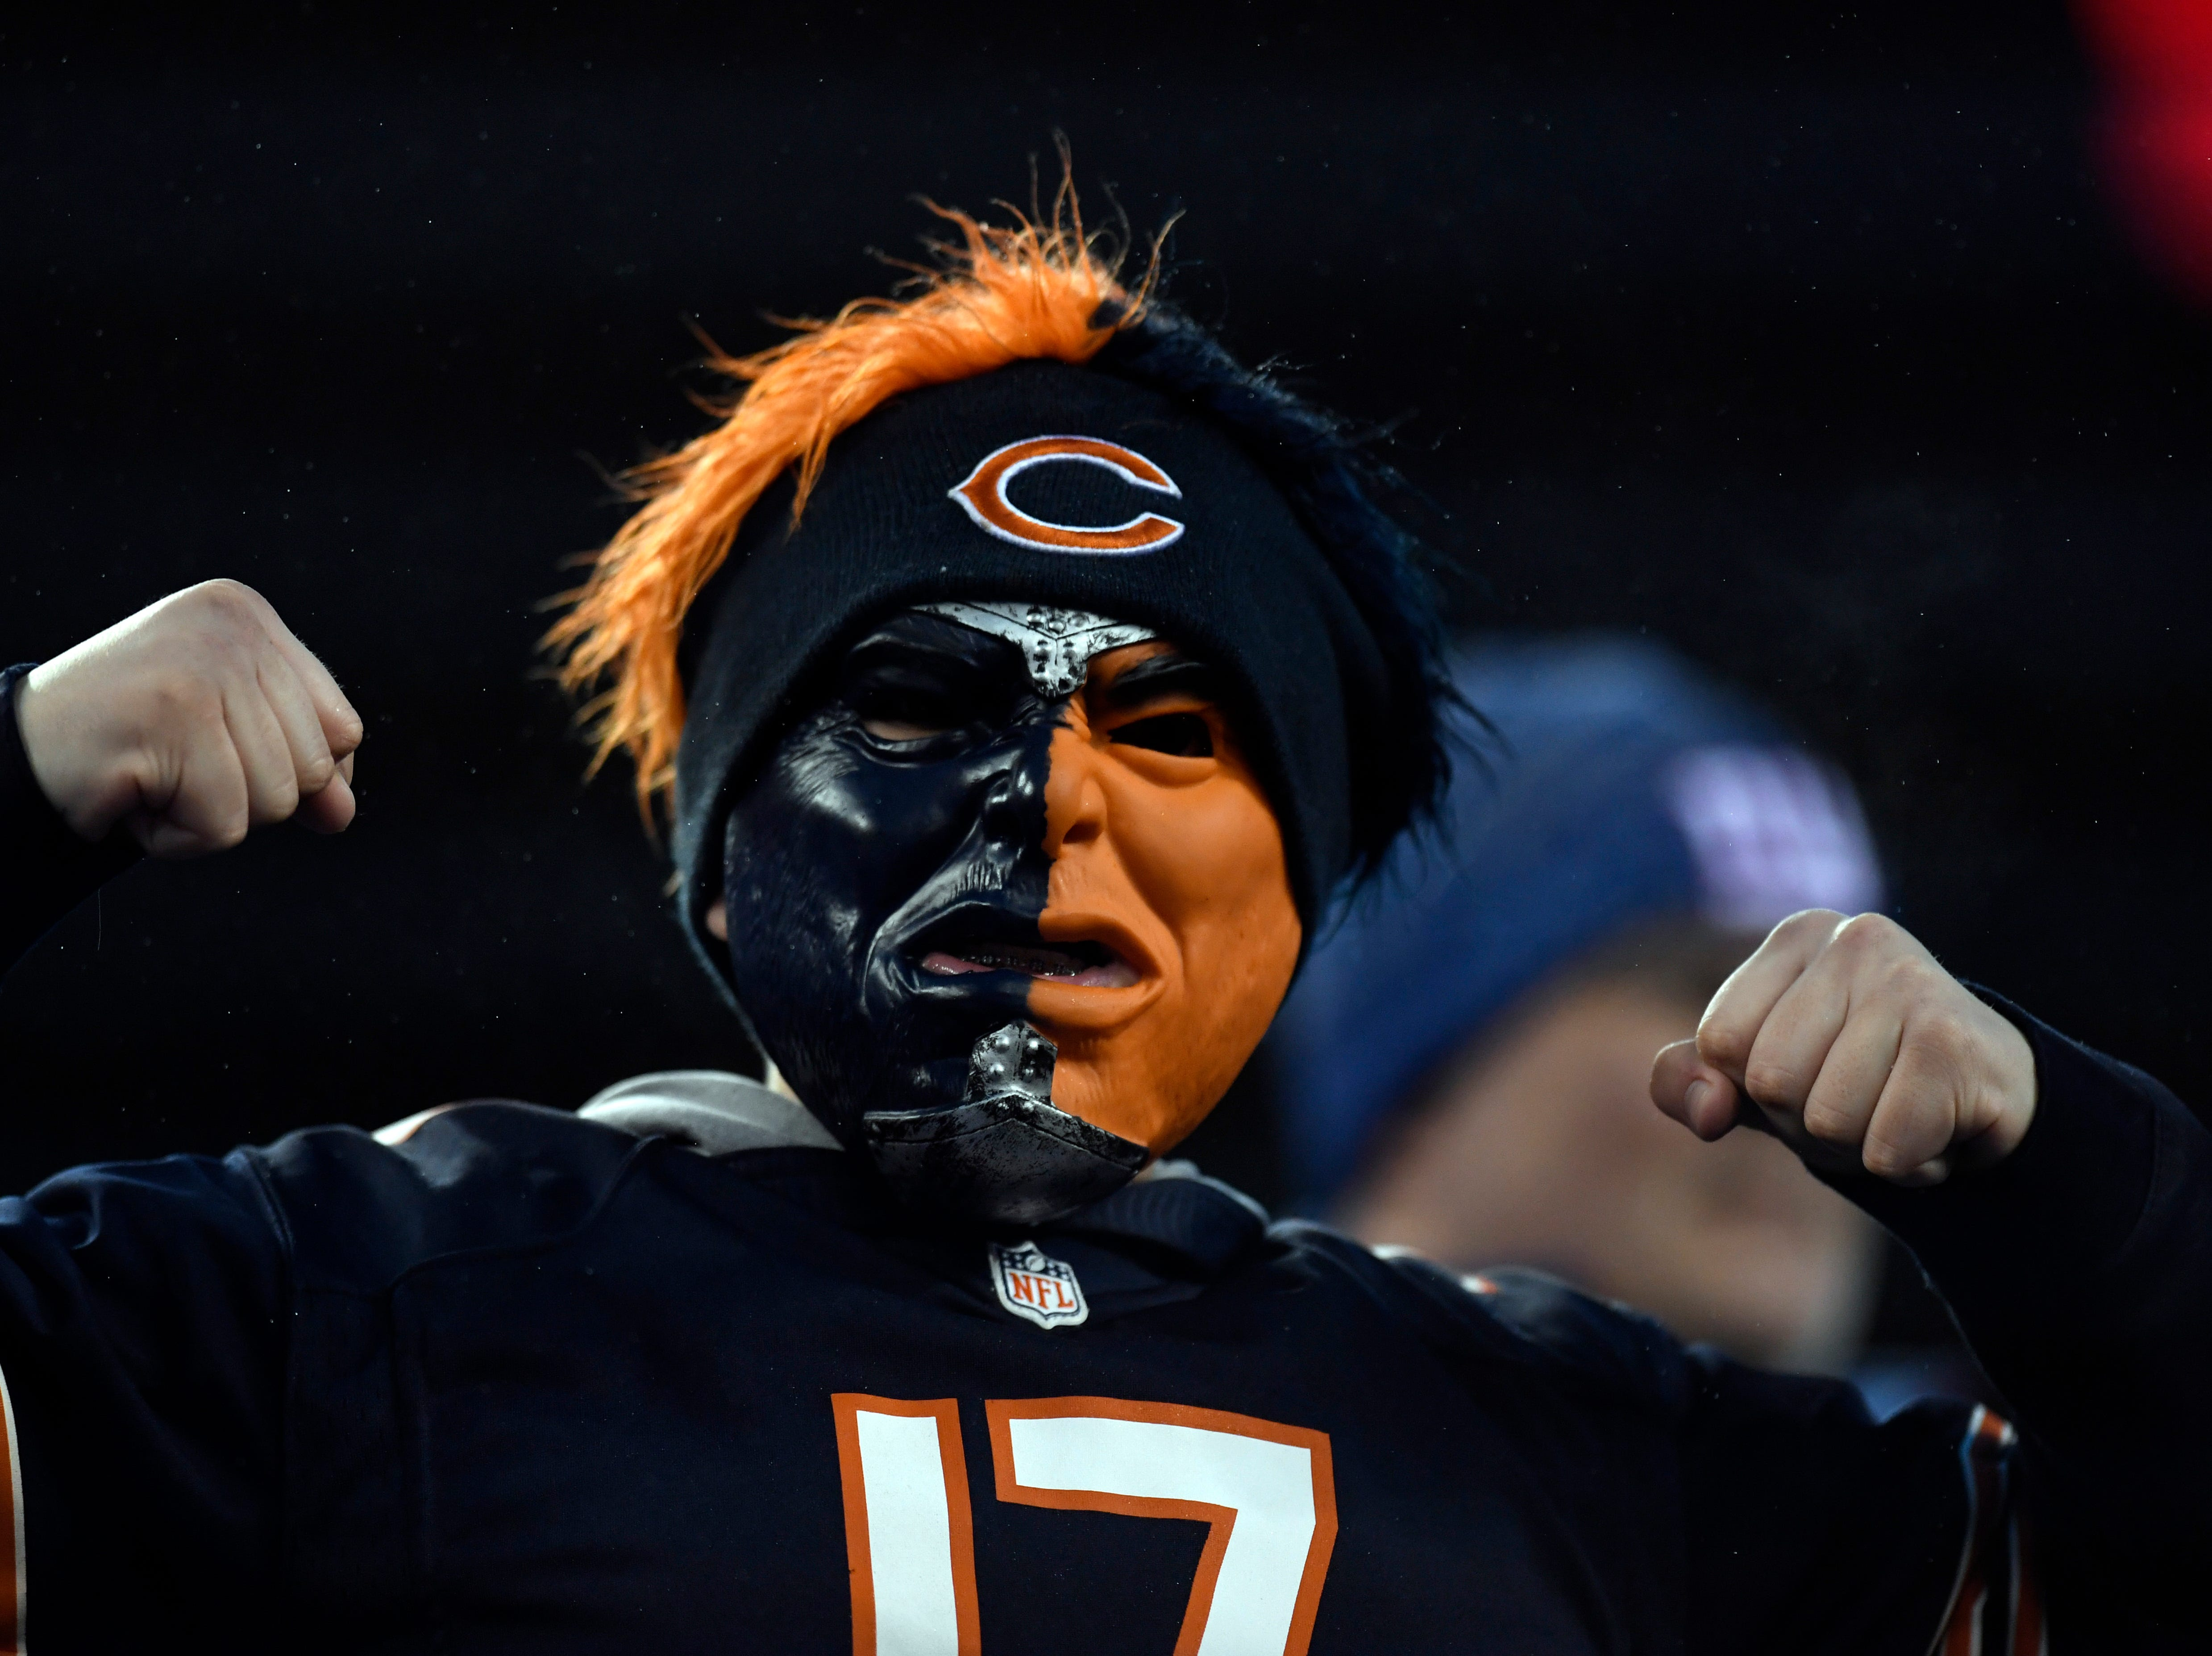 A Chicago Bears fan. The New York Giants defeat the Chicago Bears in overtime 30-27 on Sunday, Dec. 2, 2018, in East Rutherford.